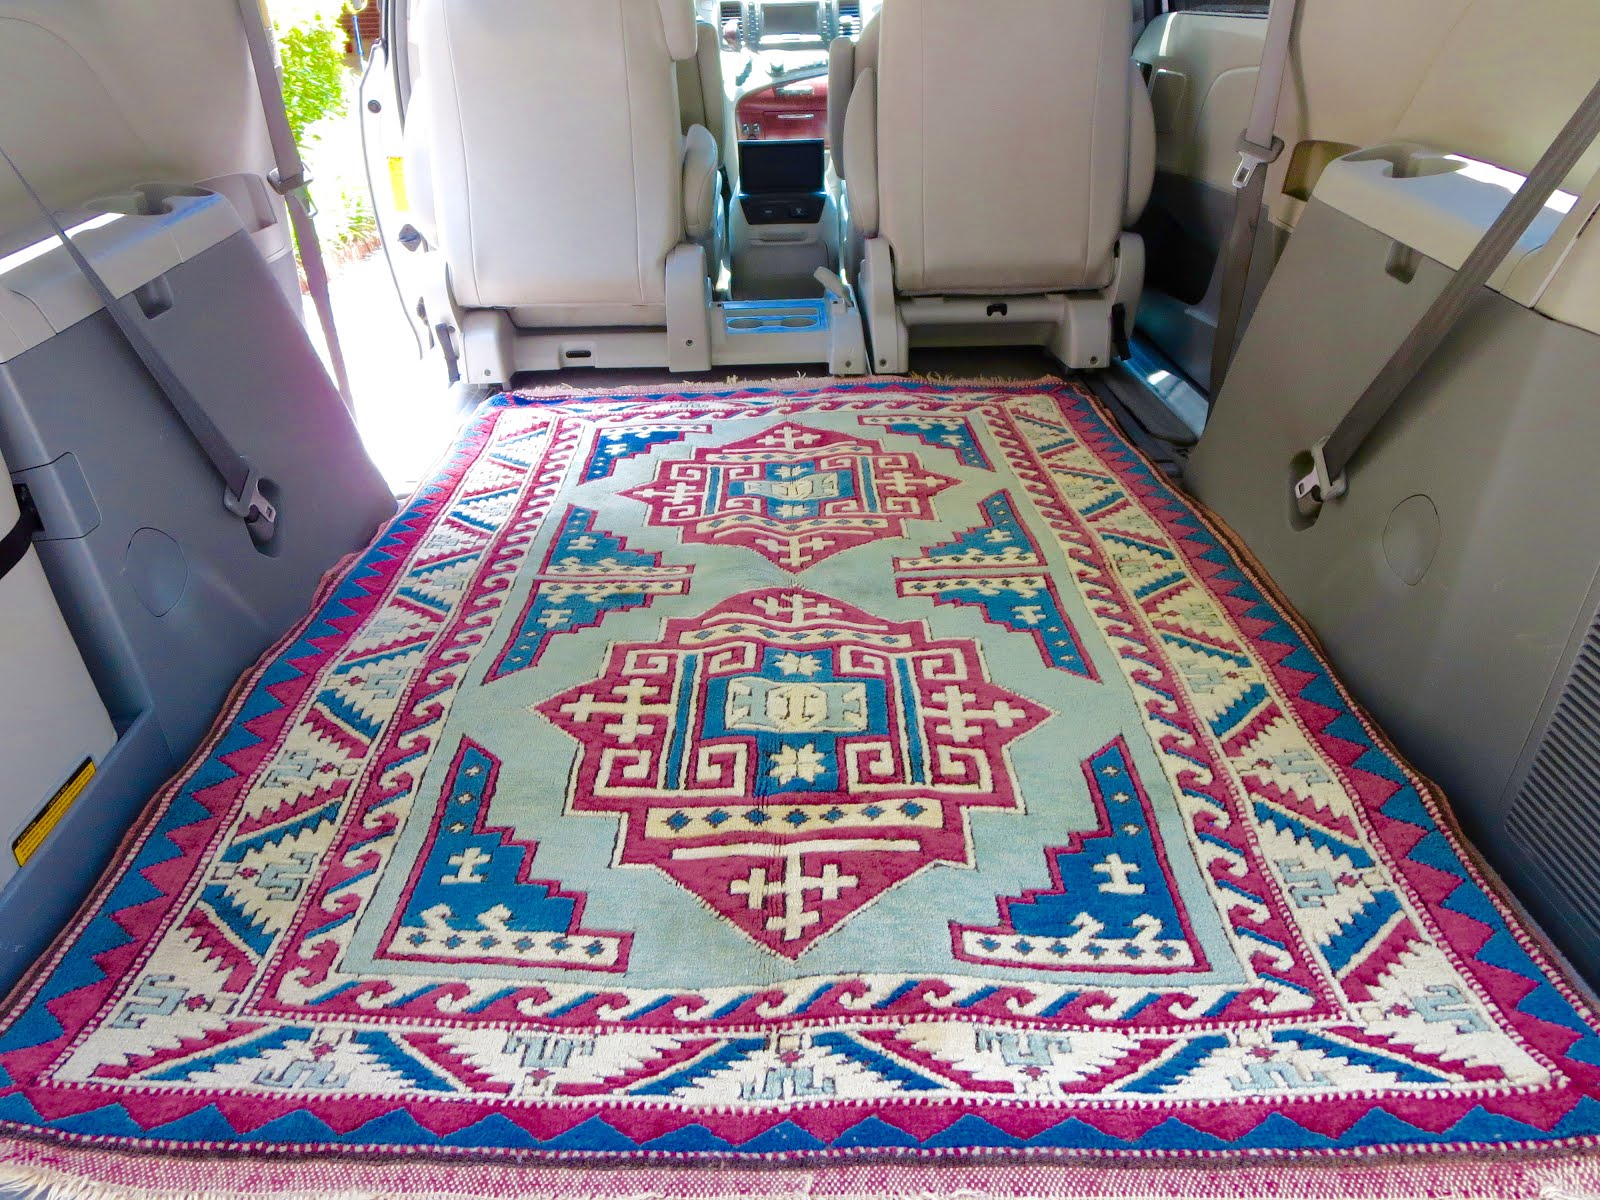 ADDING A MAGIC CARPET TO THE ZEN GYPSY VAN